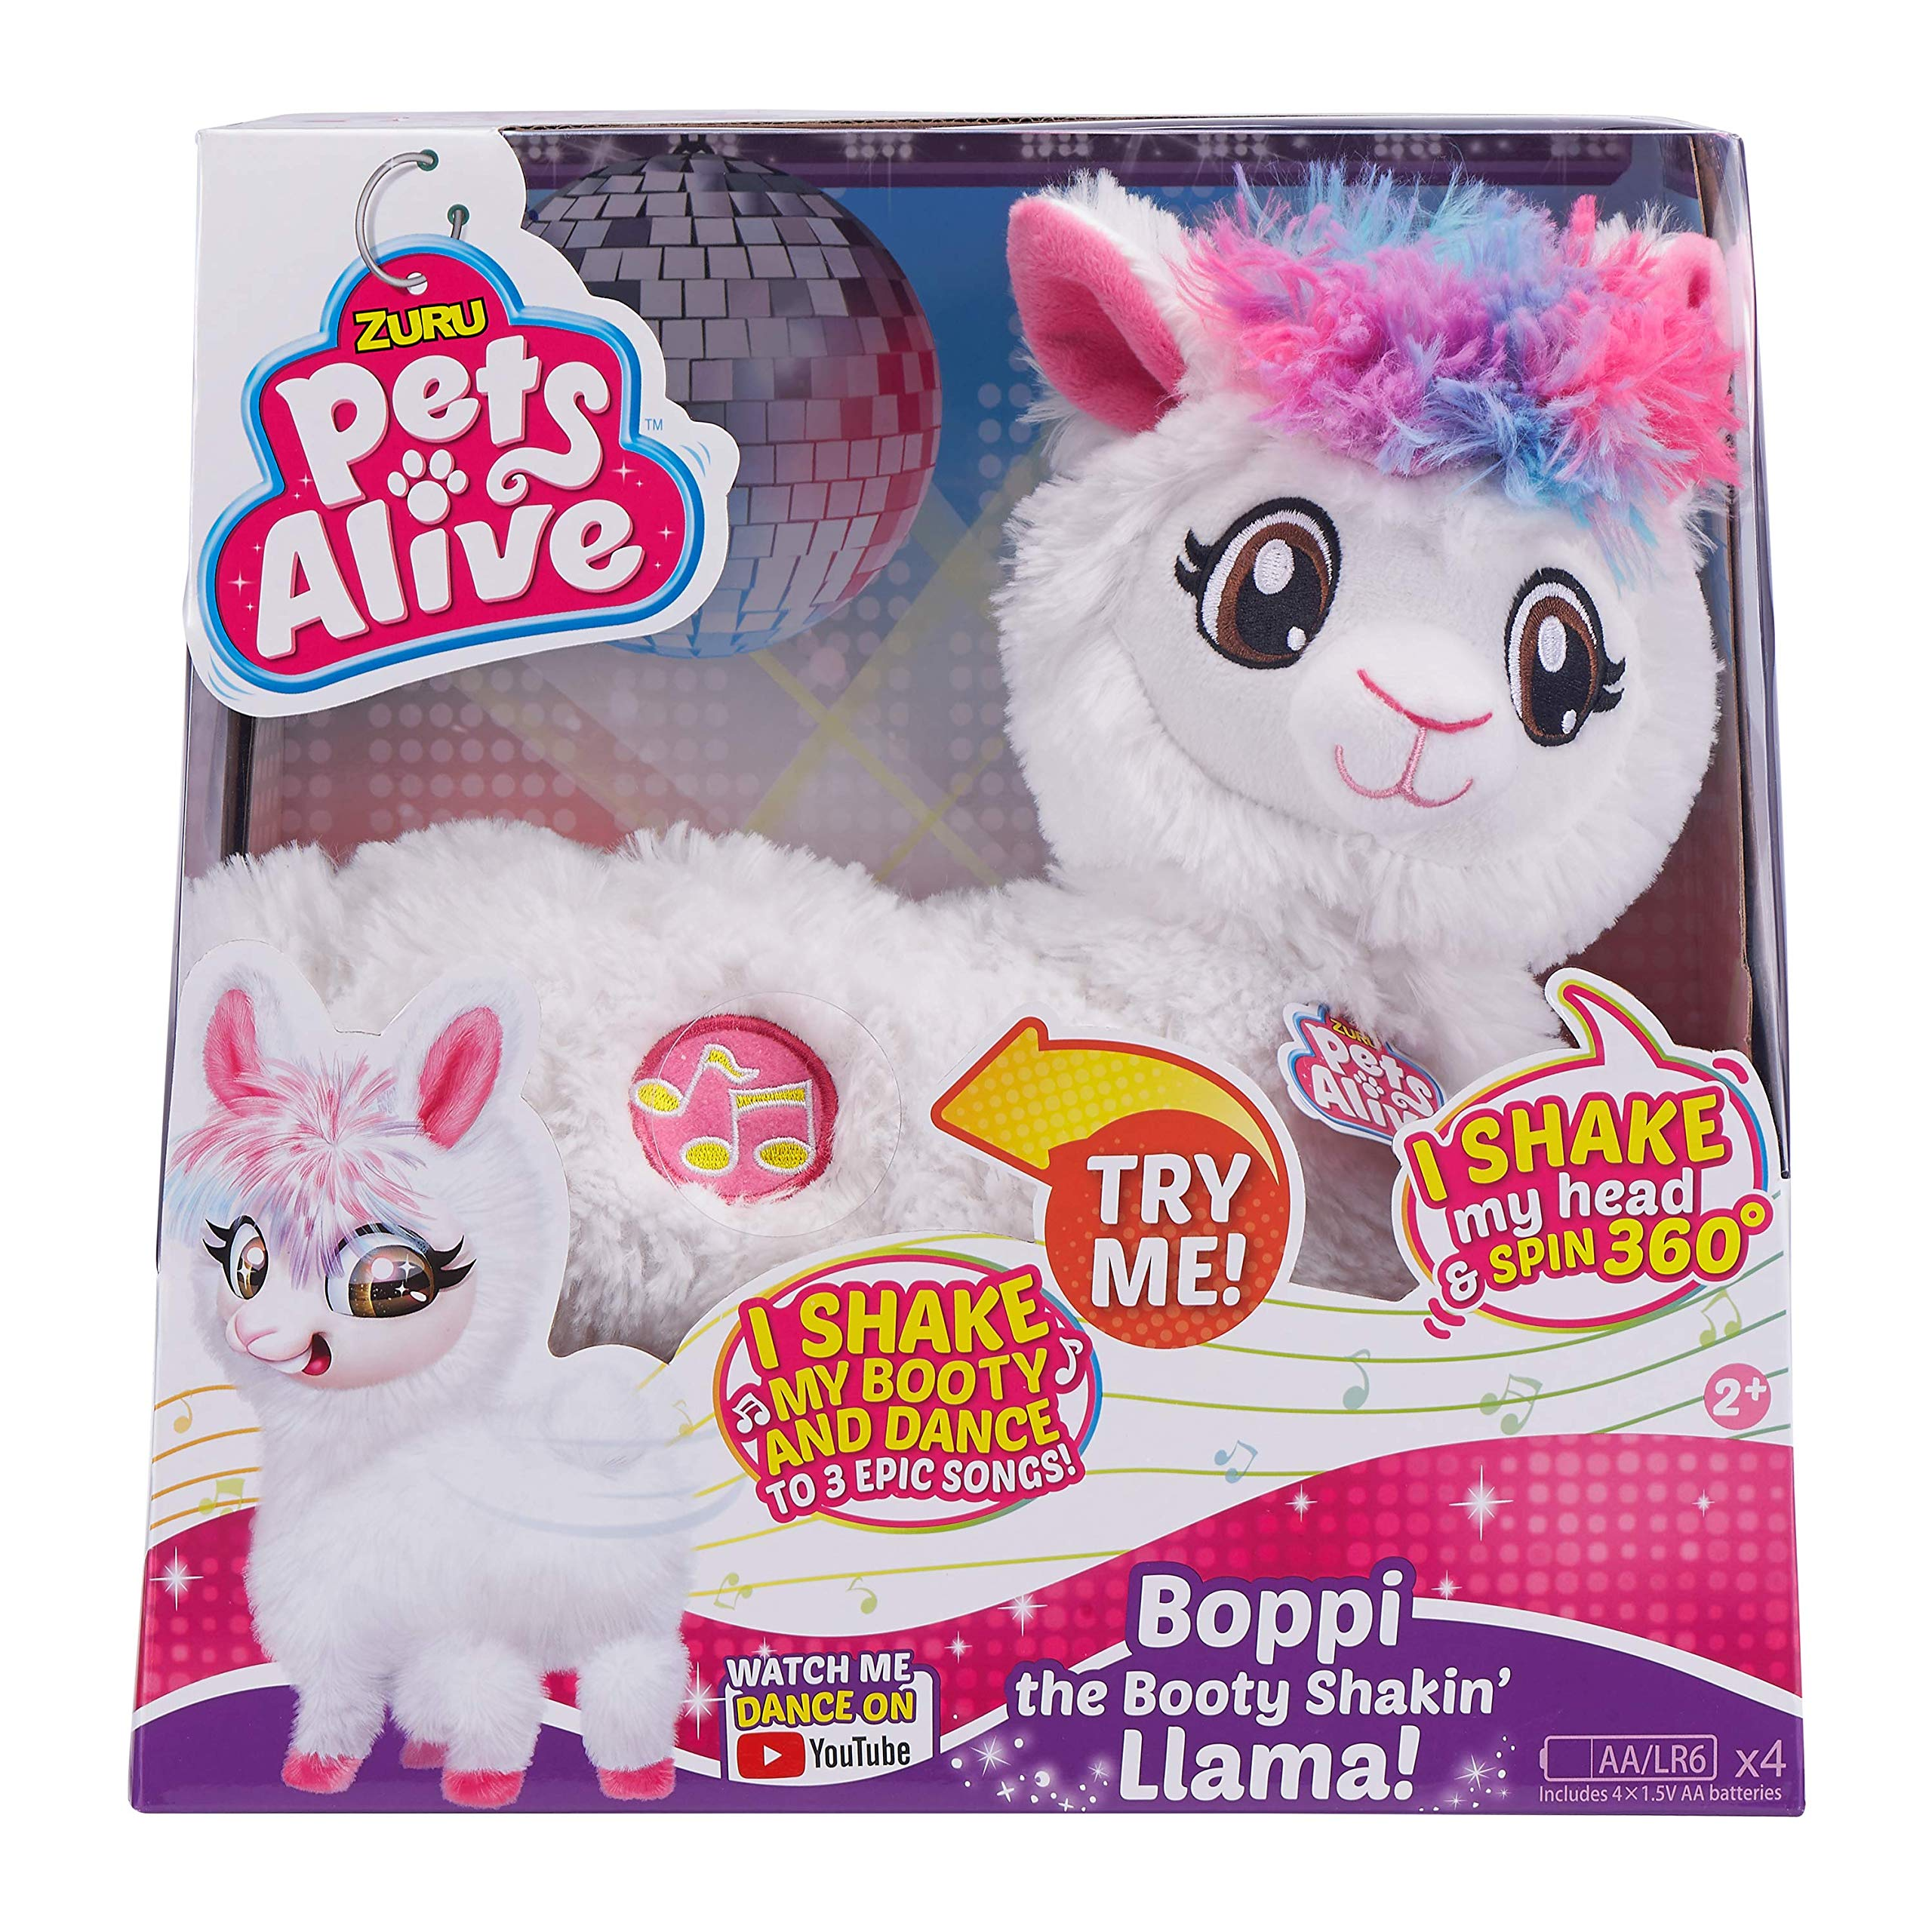 Pets Alive Boppi The Booty Shakin Llama Battery-Powered Dancing Robotic Toy by Zuru by Pets Alive (Image #1)